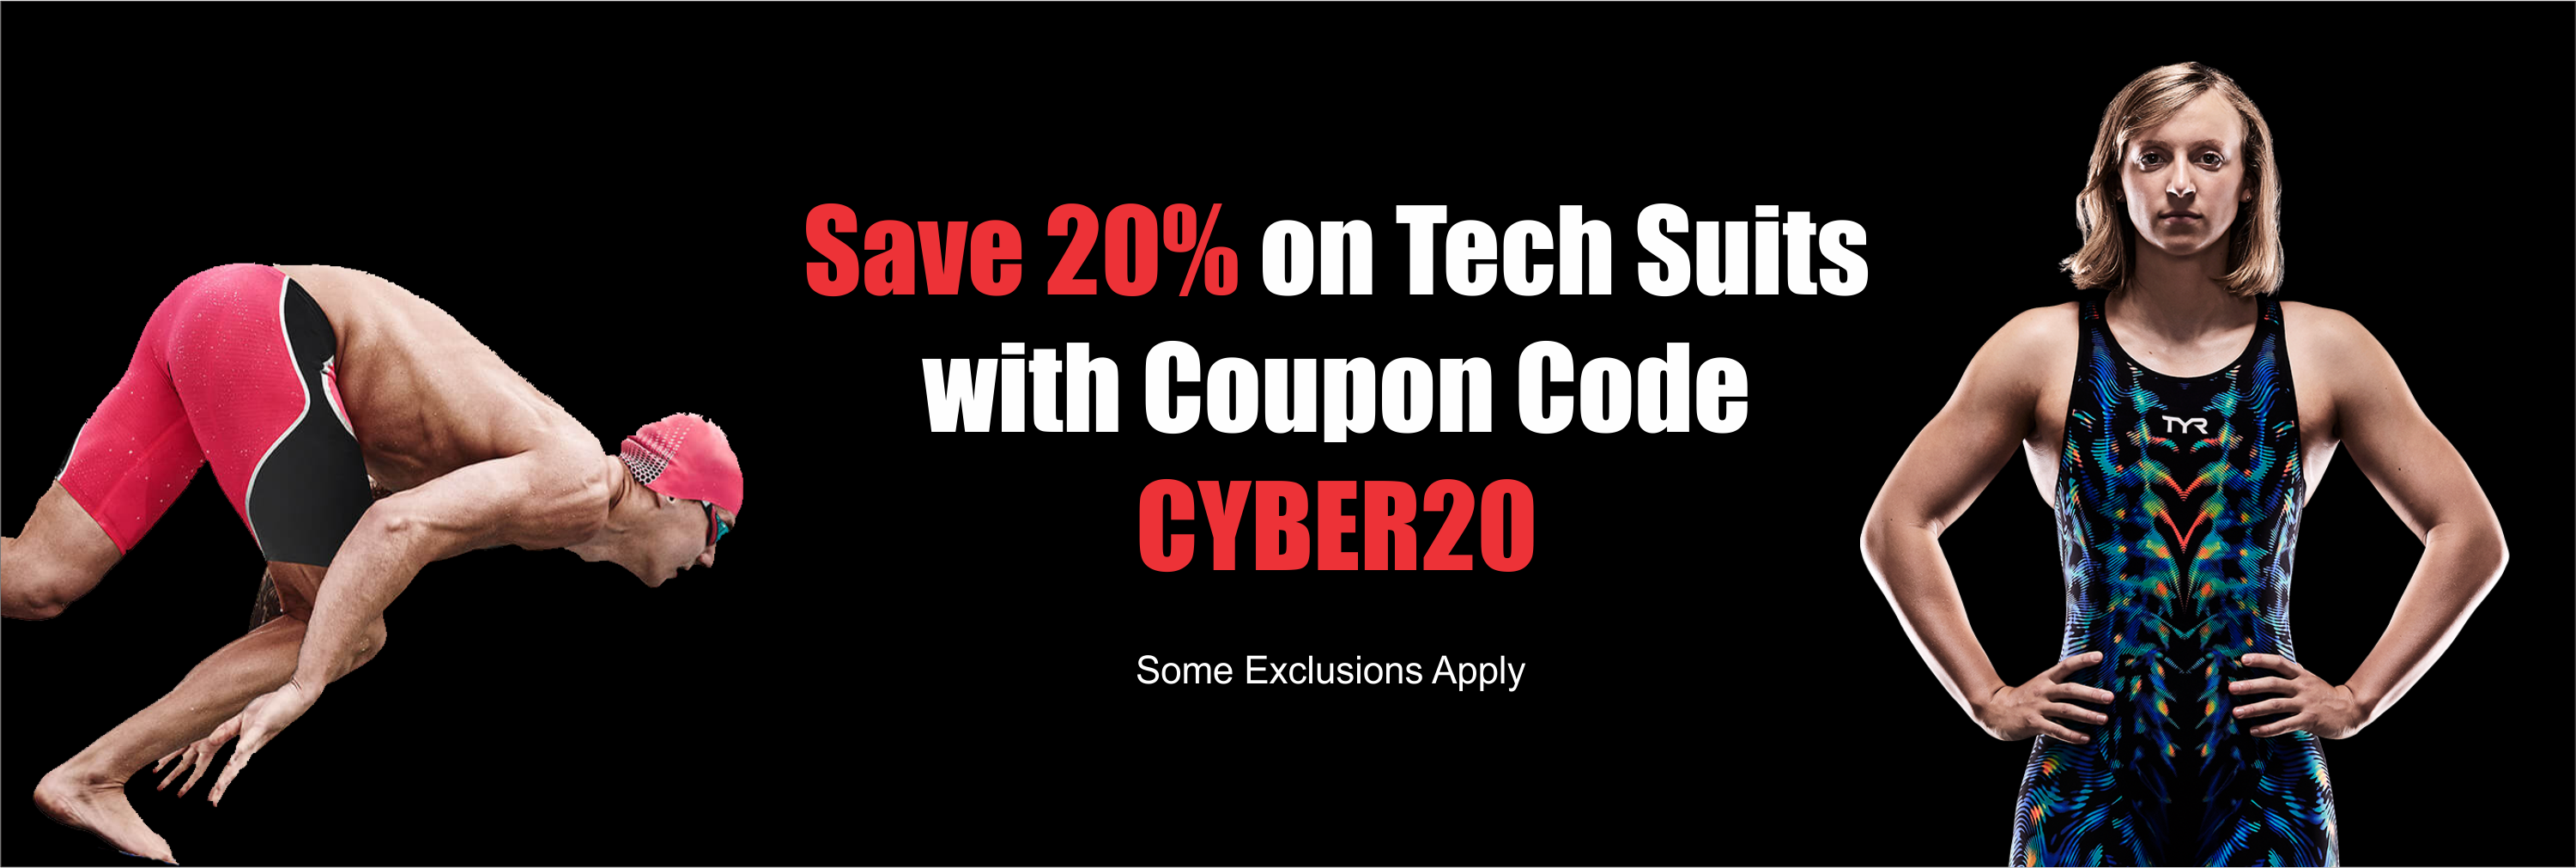 2019-tech-suit-coupon-banner.png